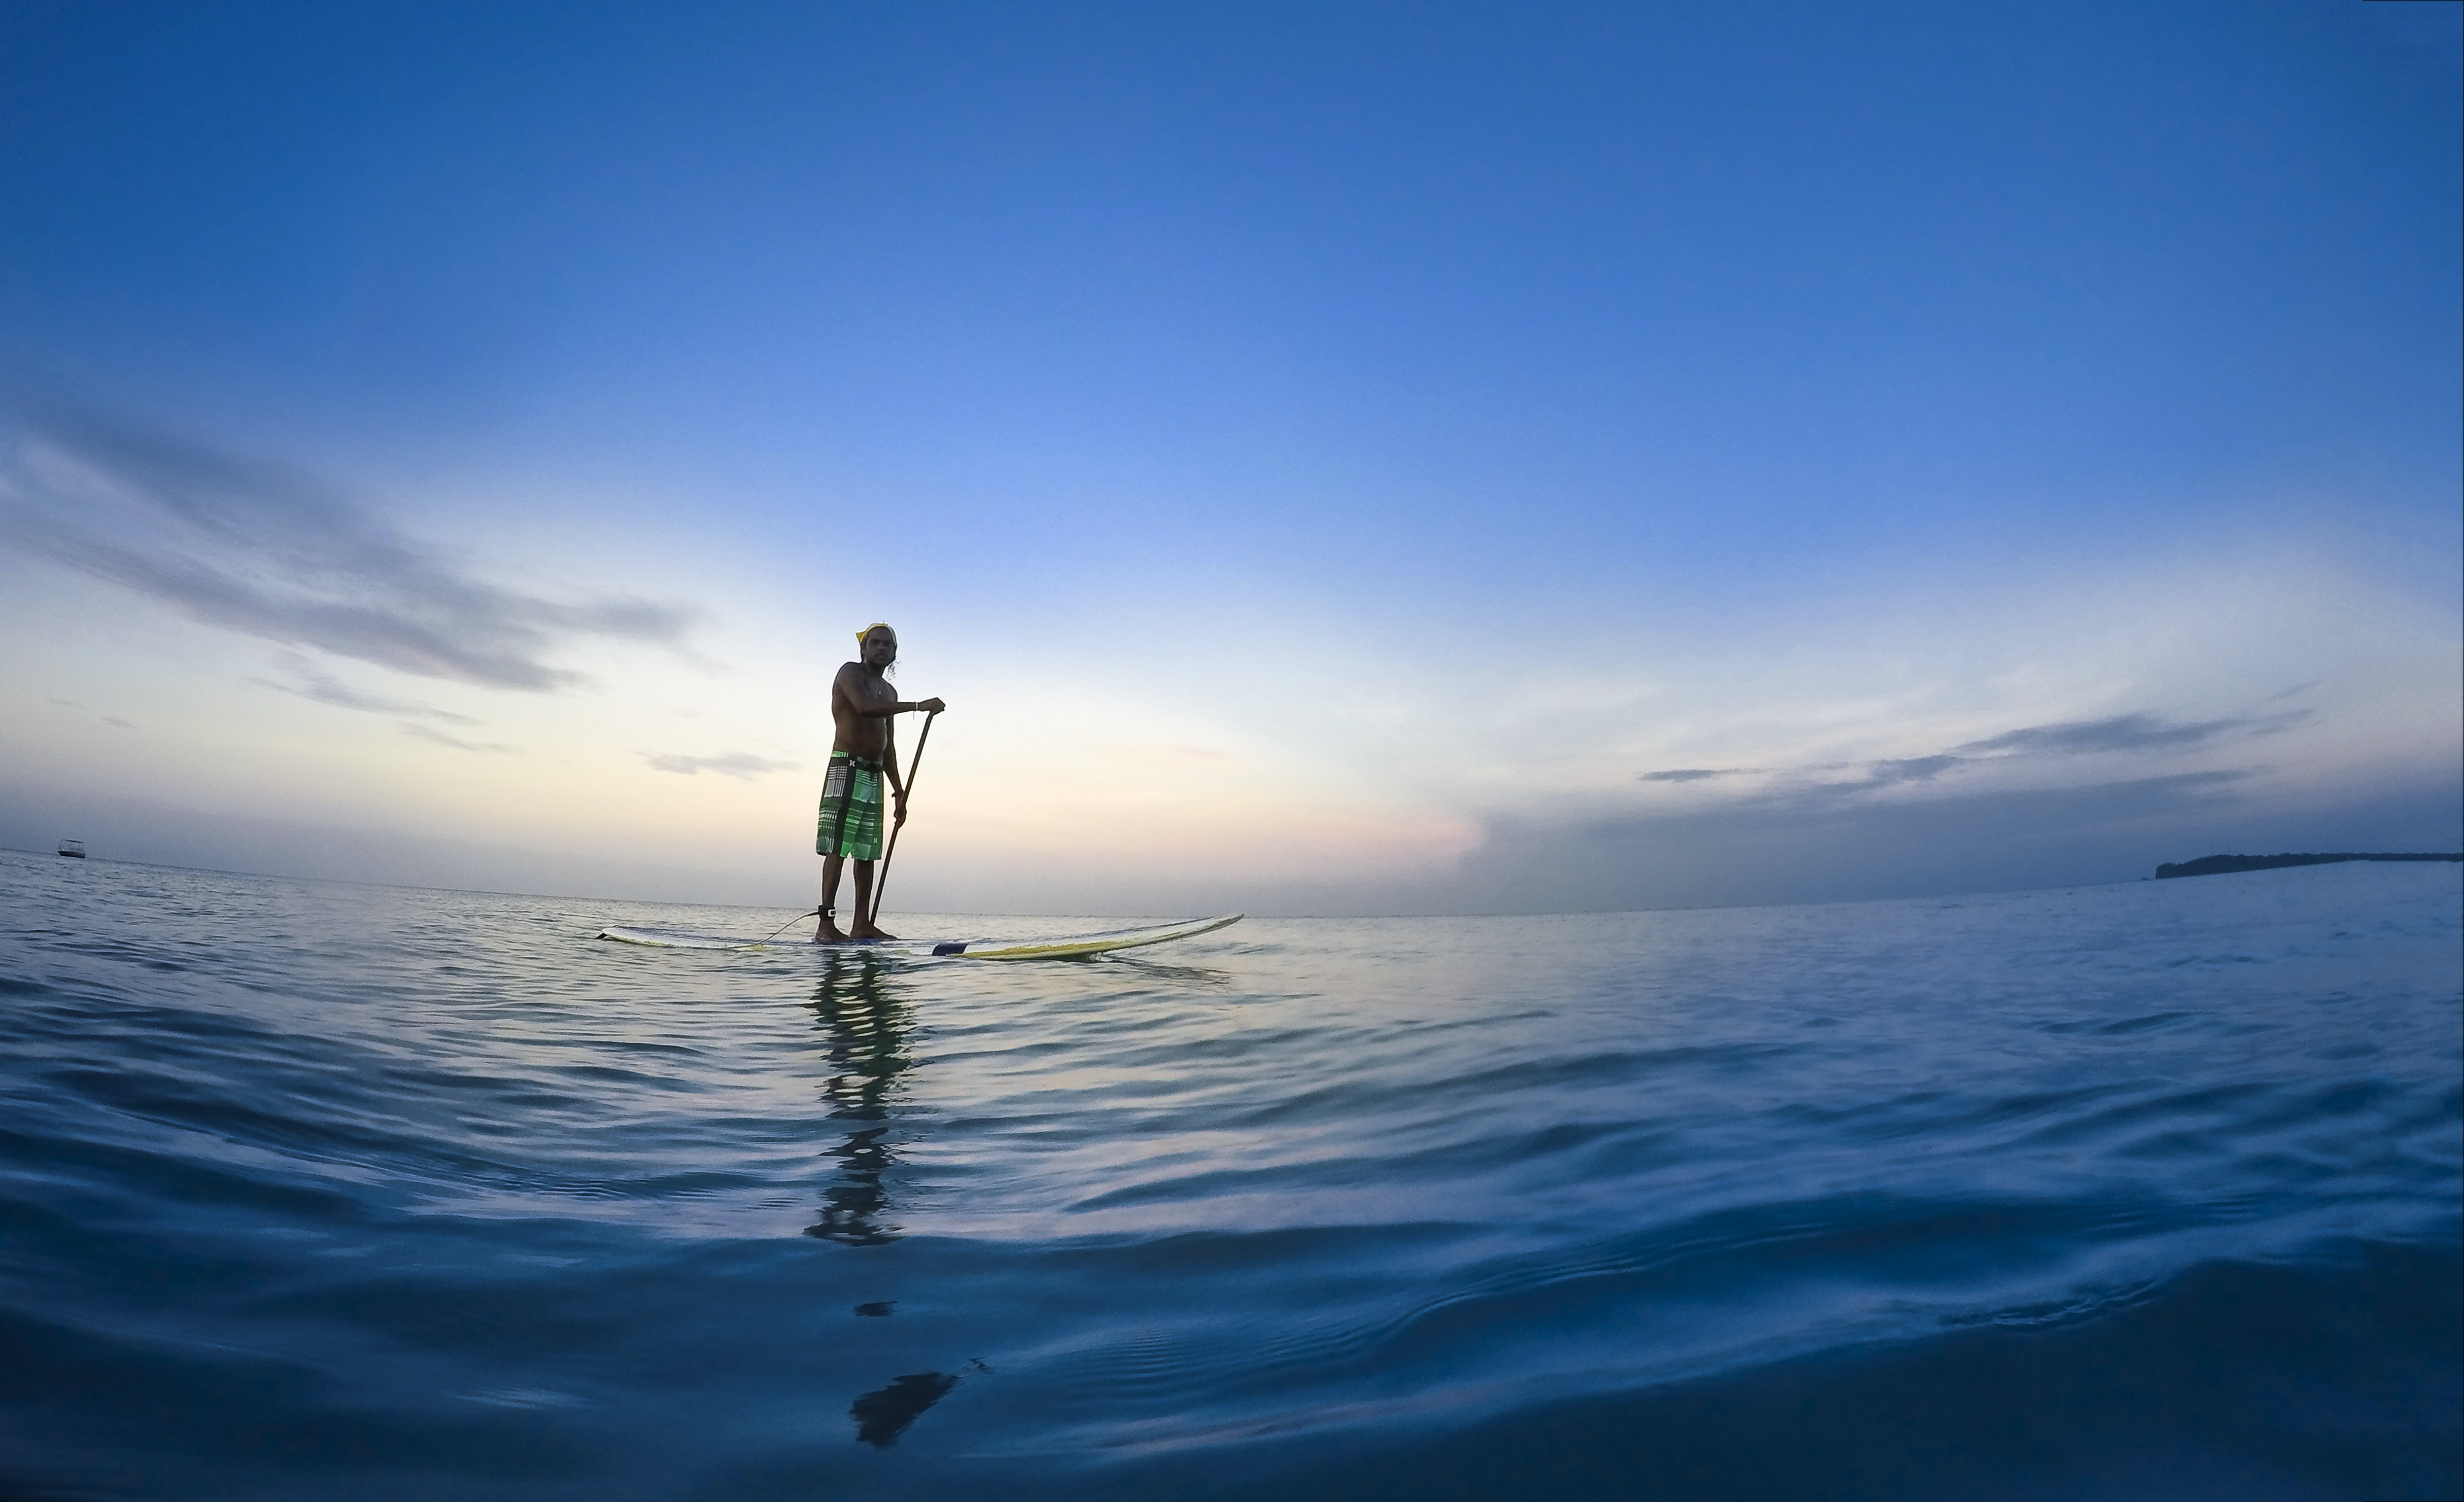 Man standing on a paddleboard in Trincomalee as a sunset appears in the blue horizon